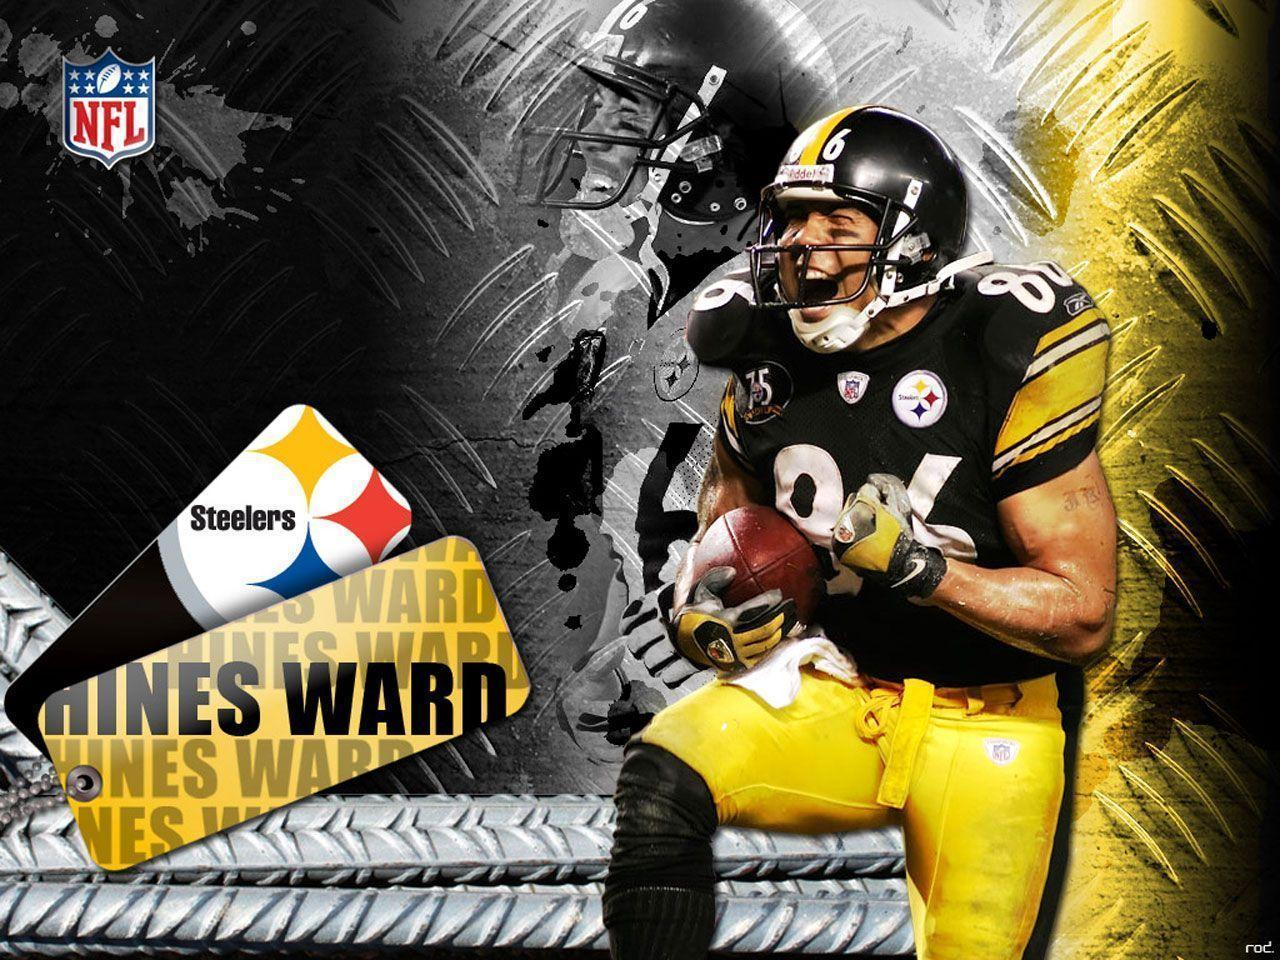 Ward Hine Wallpaper, Pittsburgh Steelers Wallpaper, Nfl Wallpapers